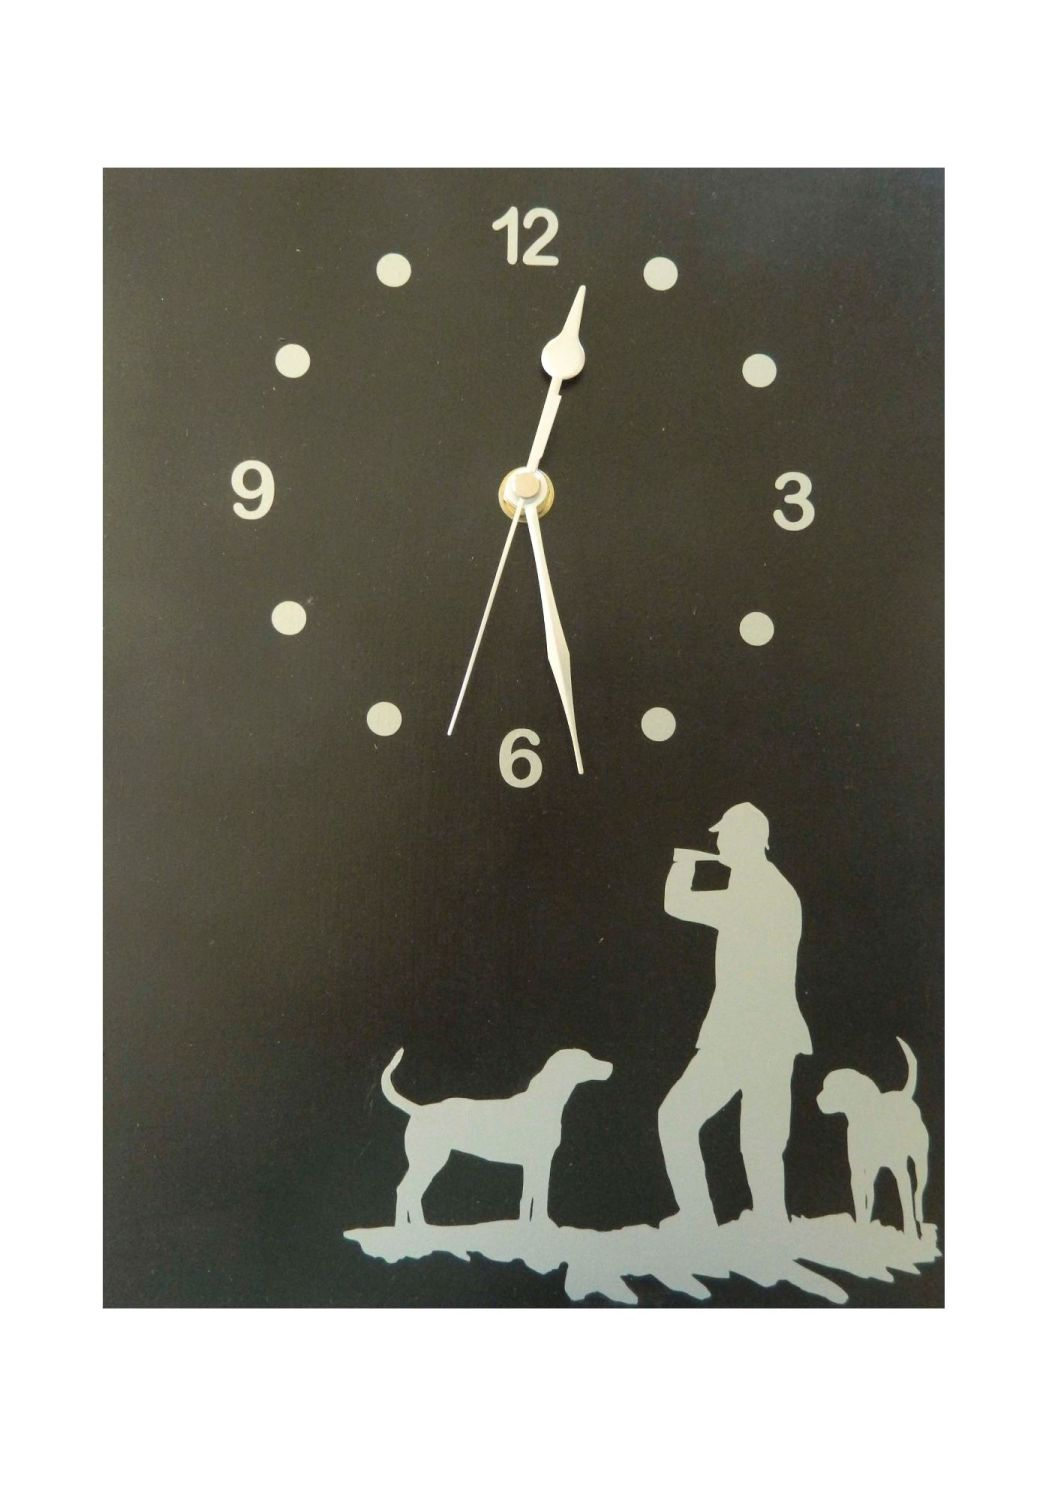 Hunting themed clock